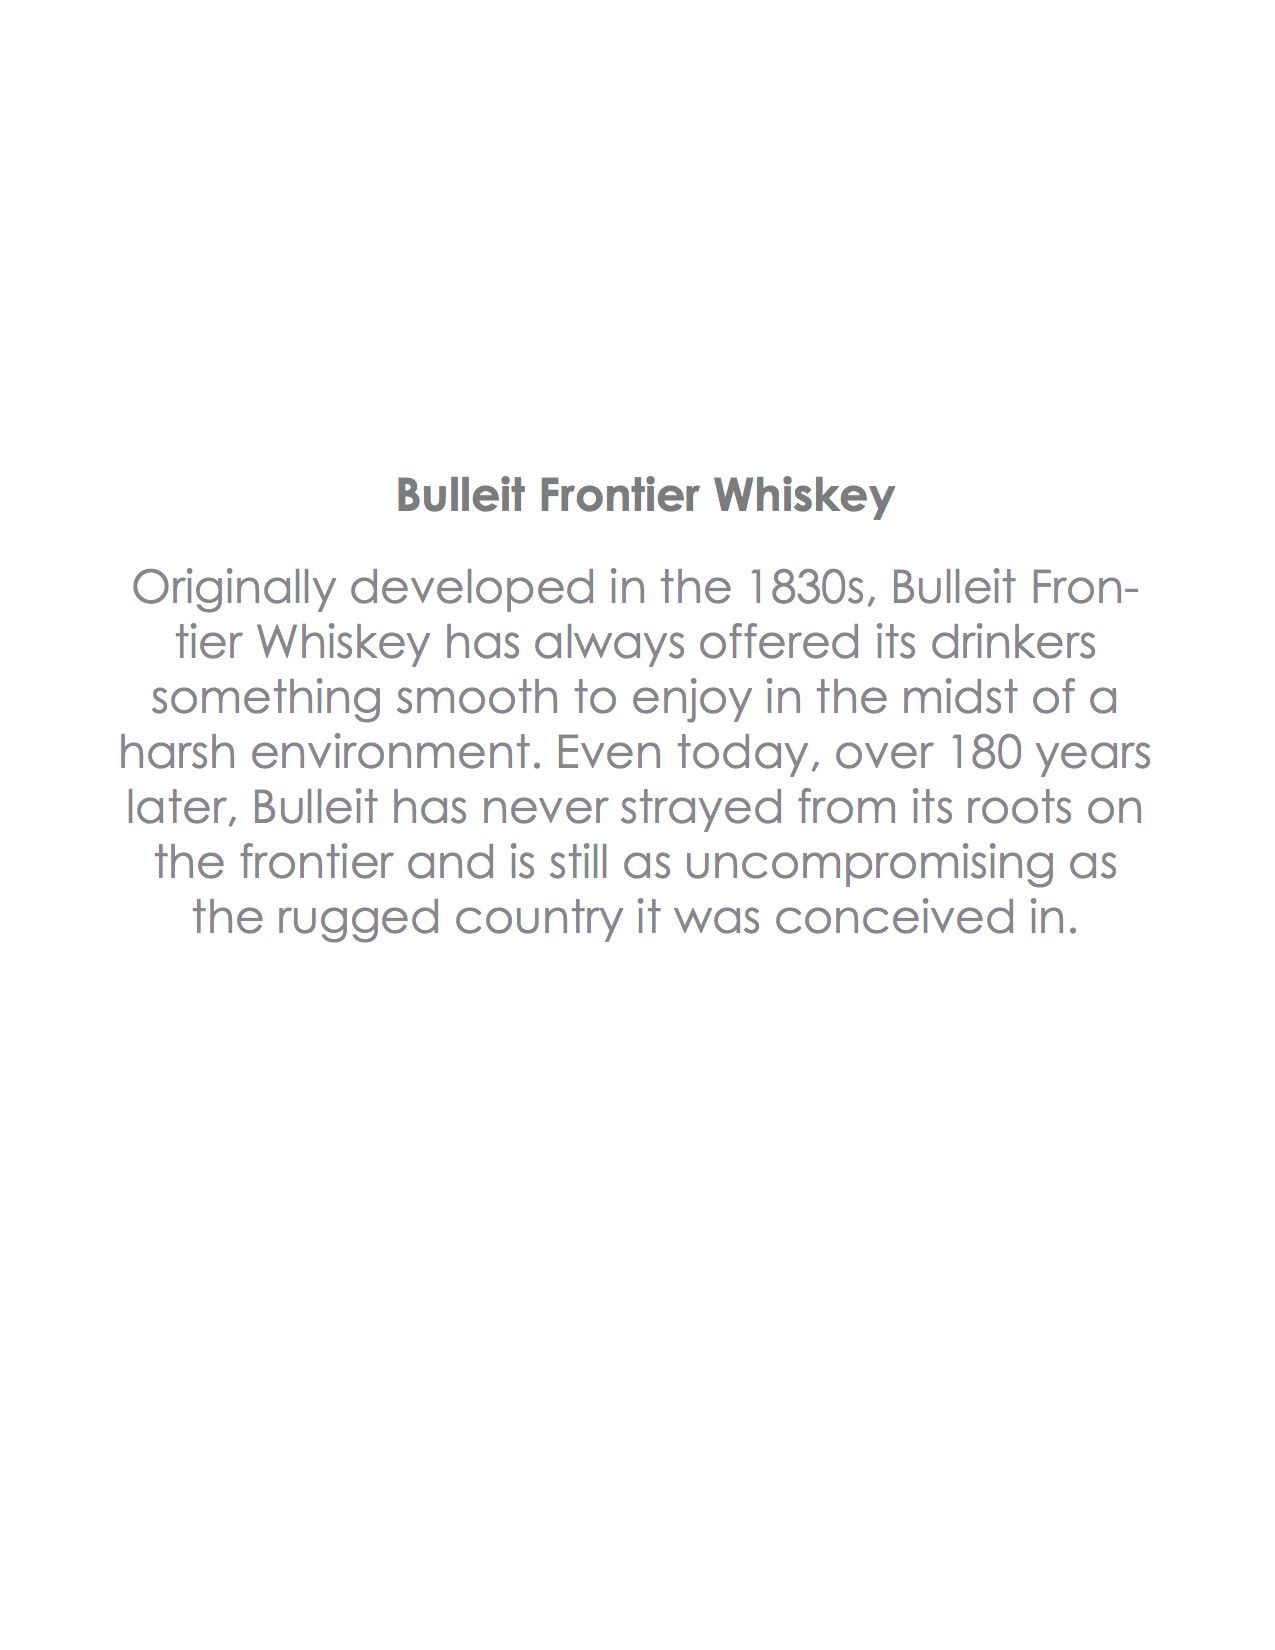 bulleit_frontier_whiskey-2.jpg